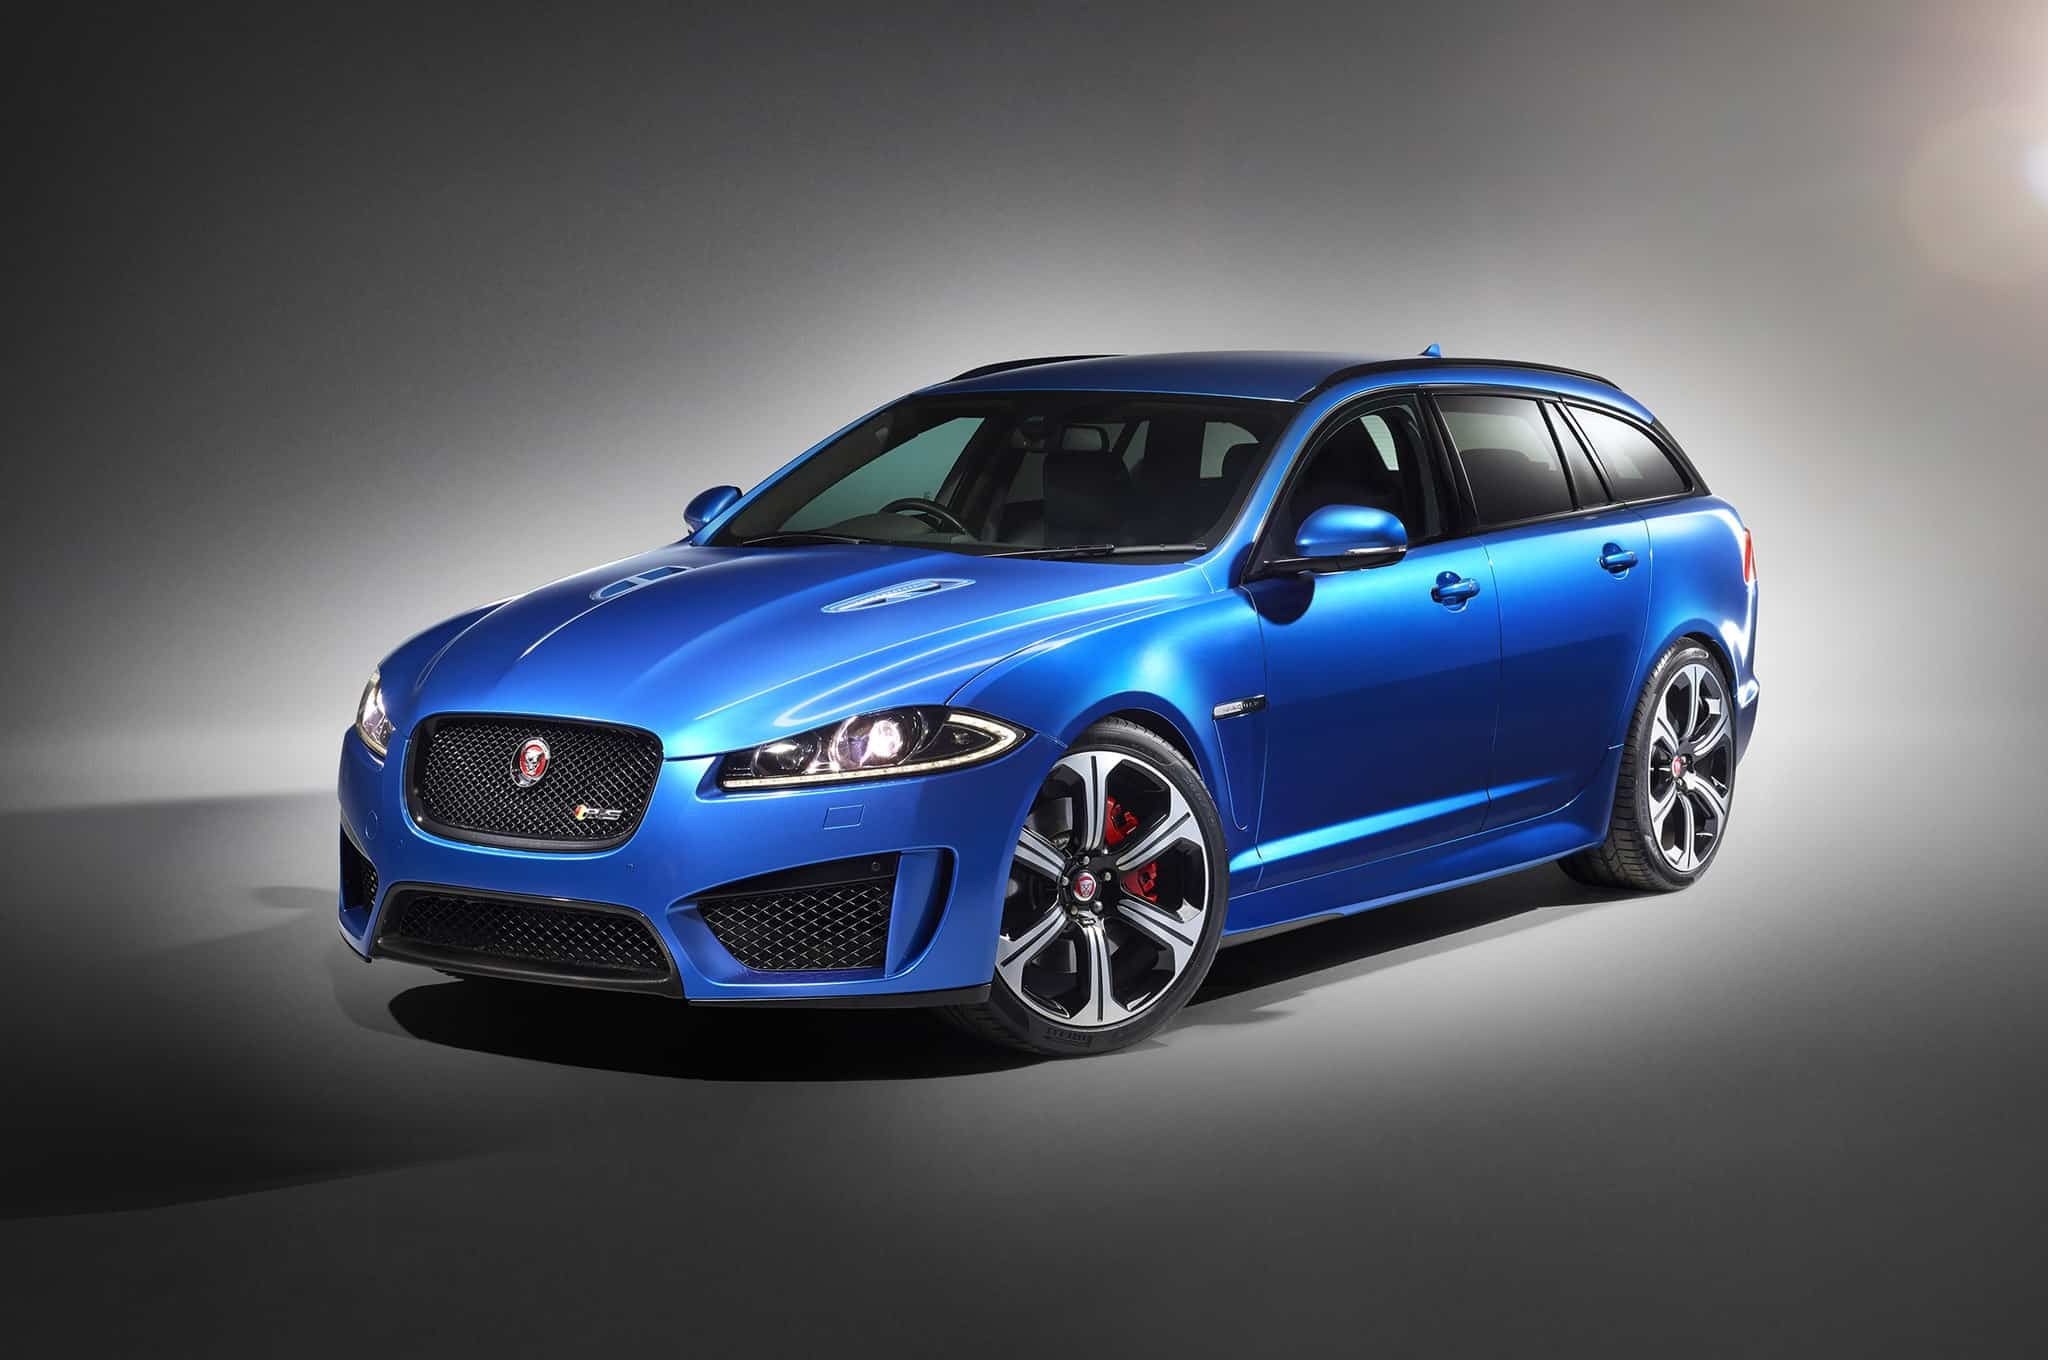 2017 Jaguar Xfr S Release Date Price And Specs